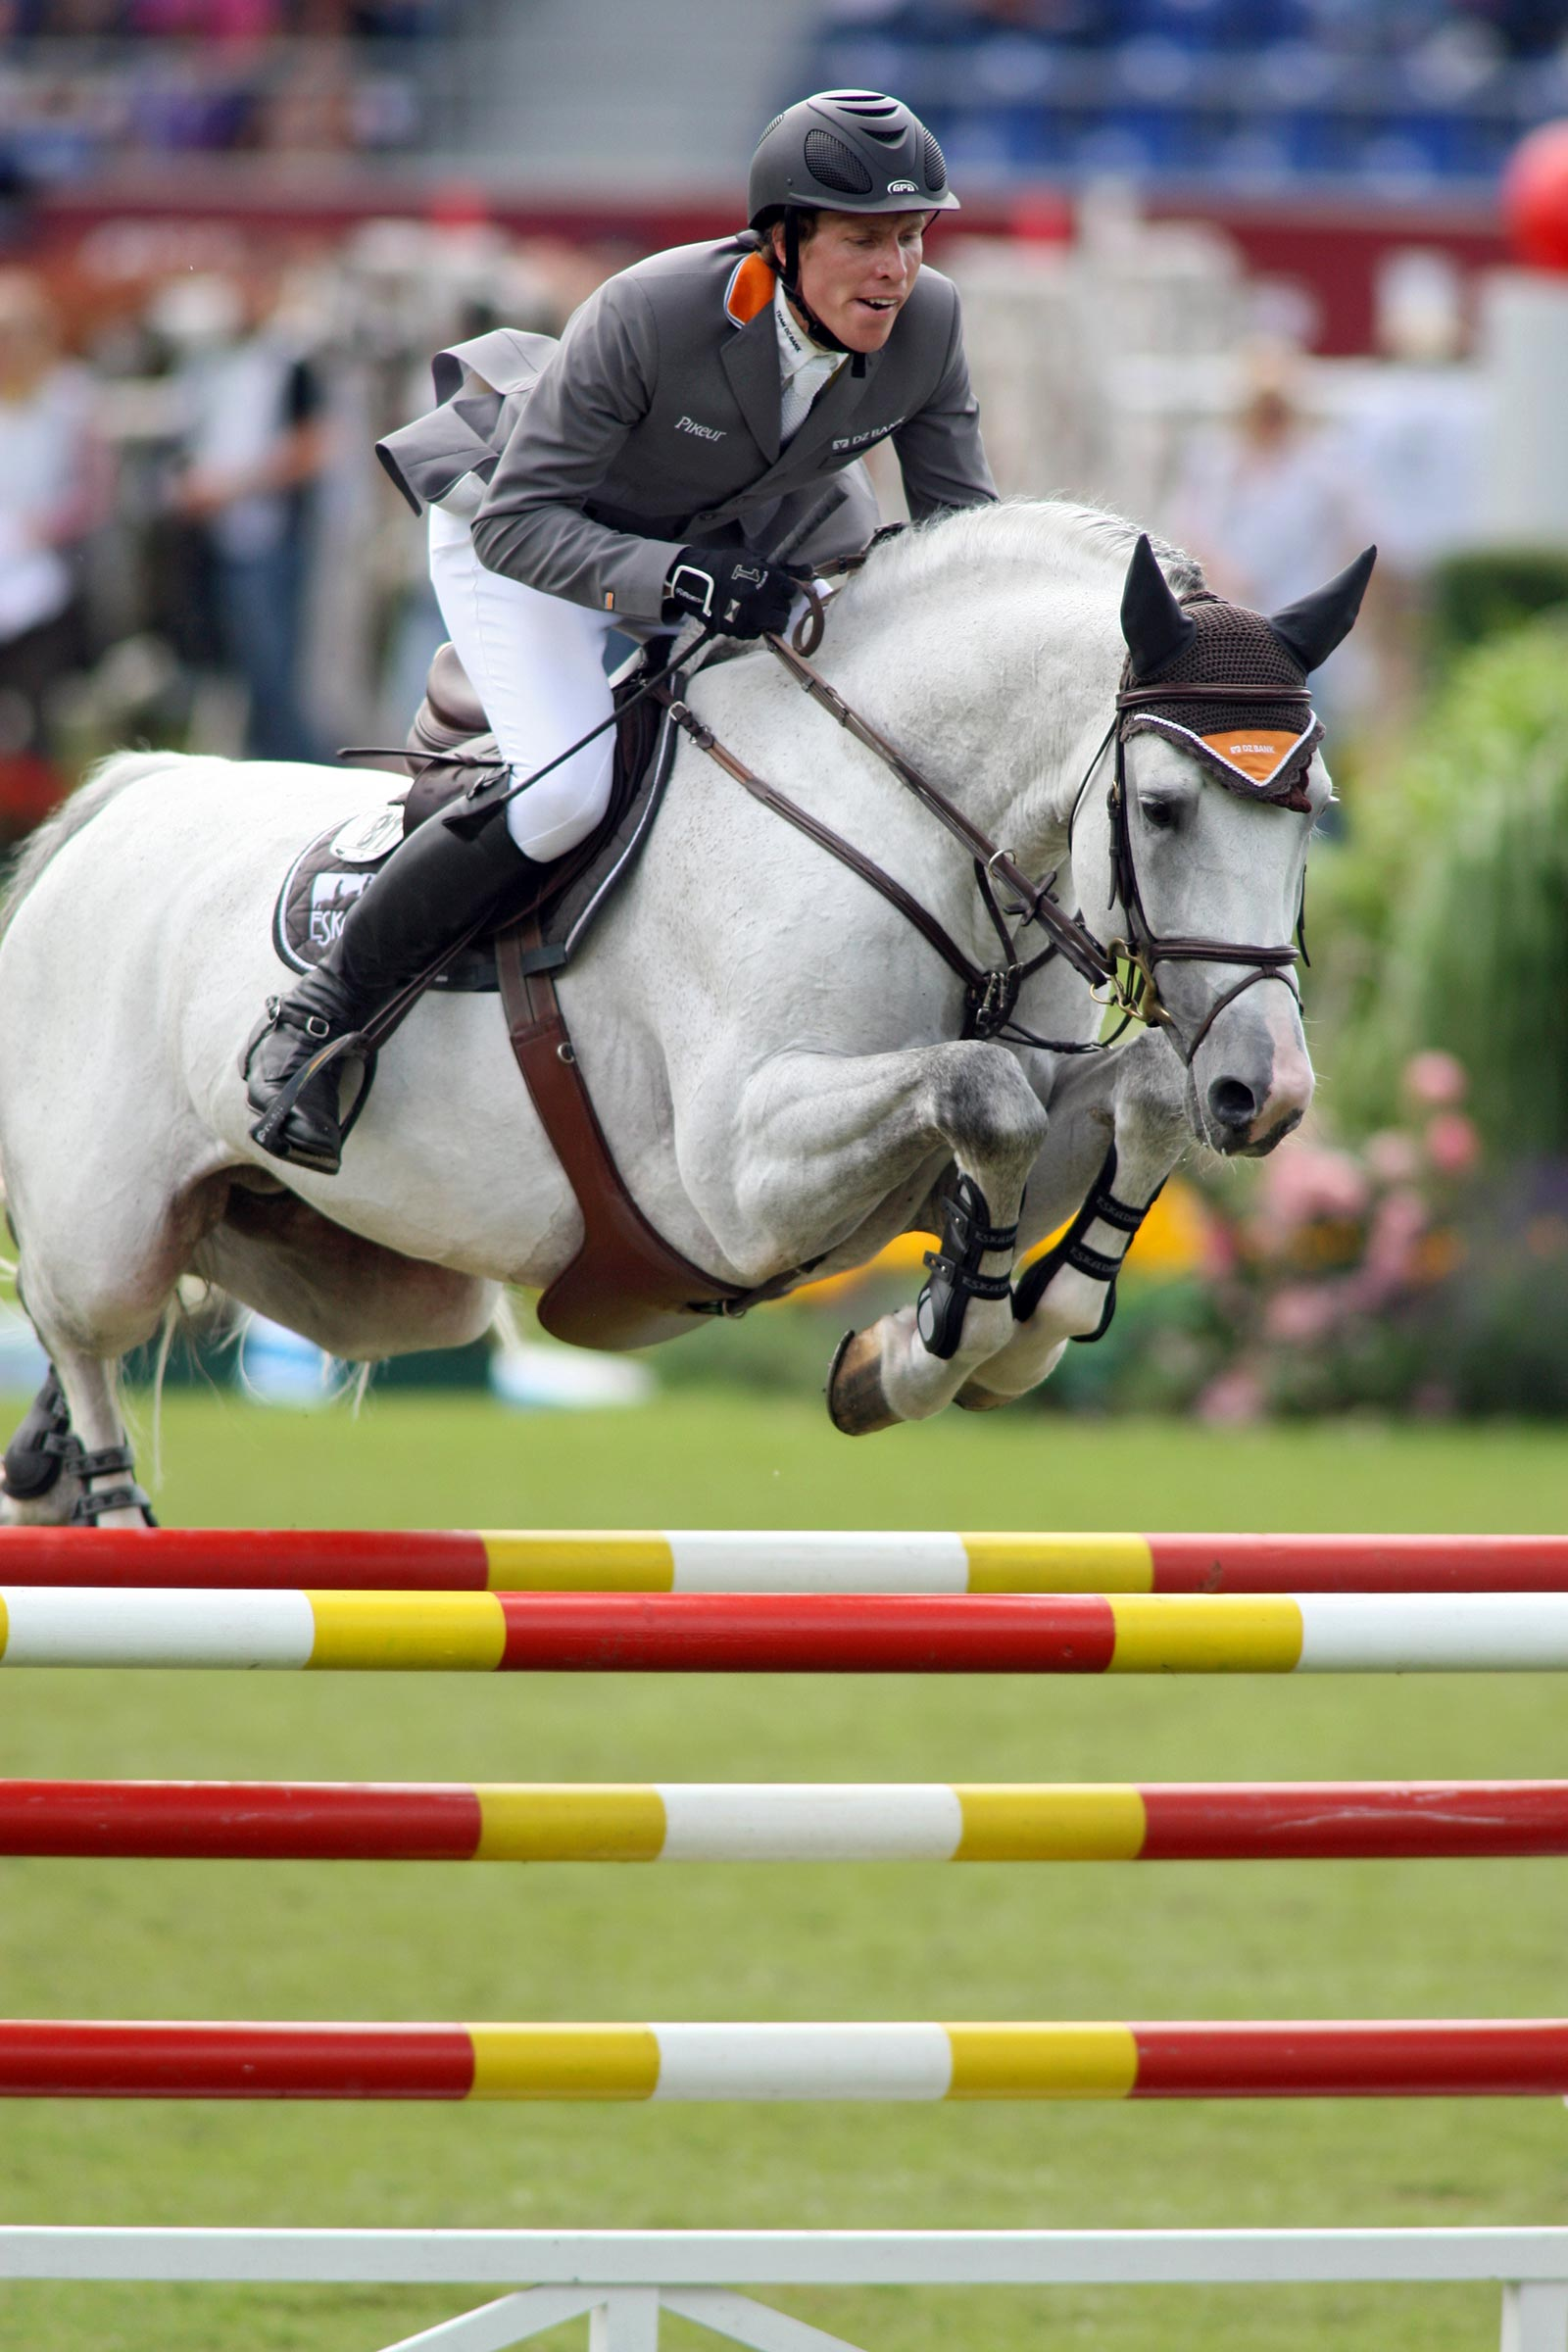 Aachen 120706 Henrik von Eckermann, SWE and Coupe de Coeur in the qualification for Grosse Prize. Photo: Roland Thunholm Code: 718 35 .